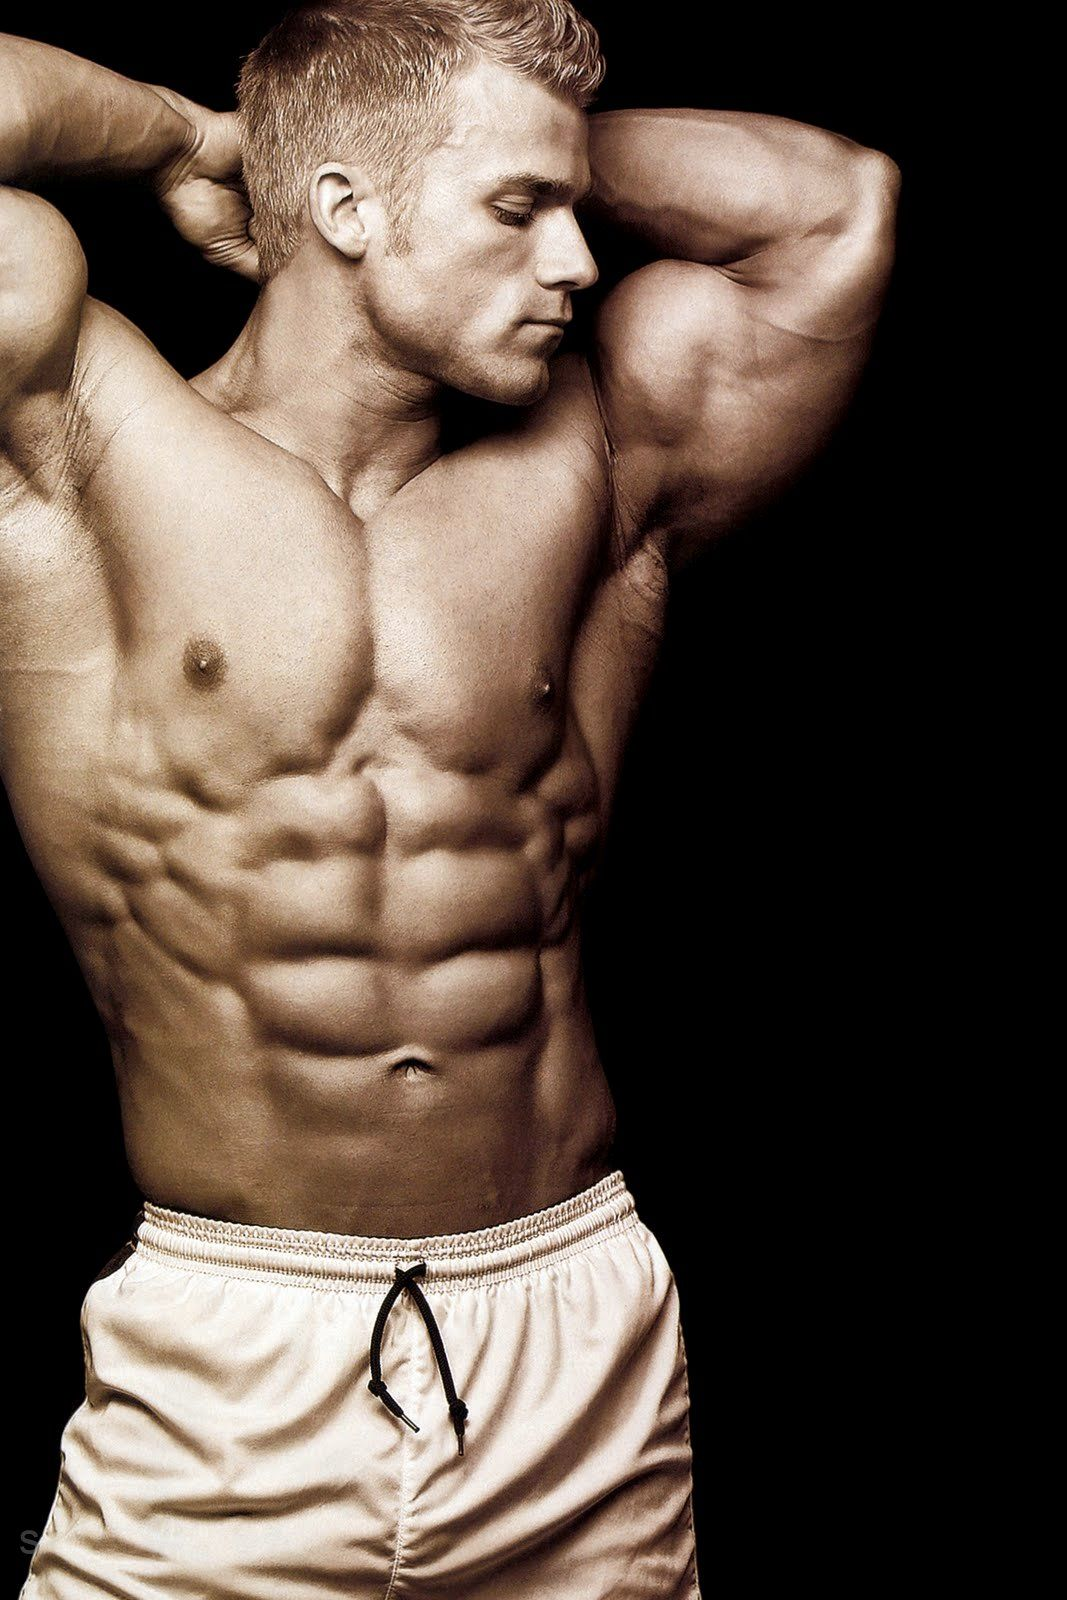 Hot Muscles Hung Beautiful Man